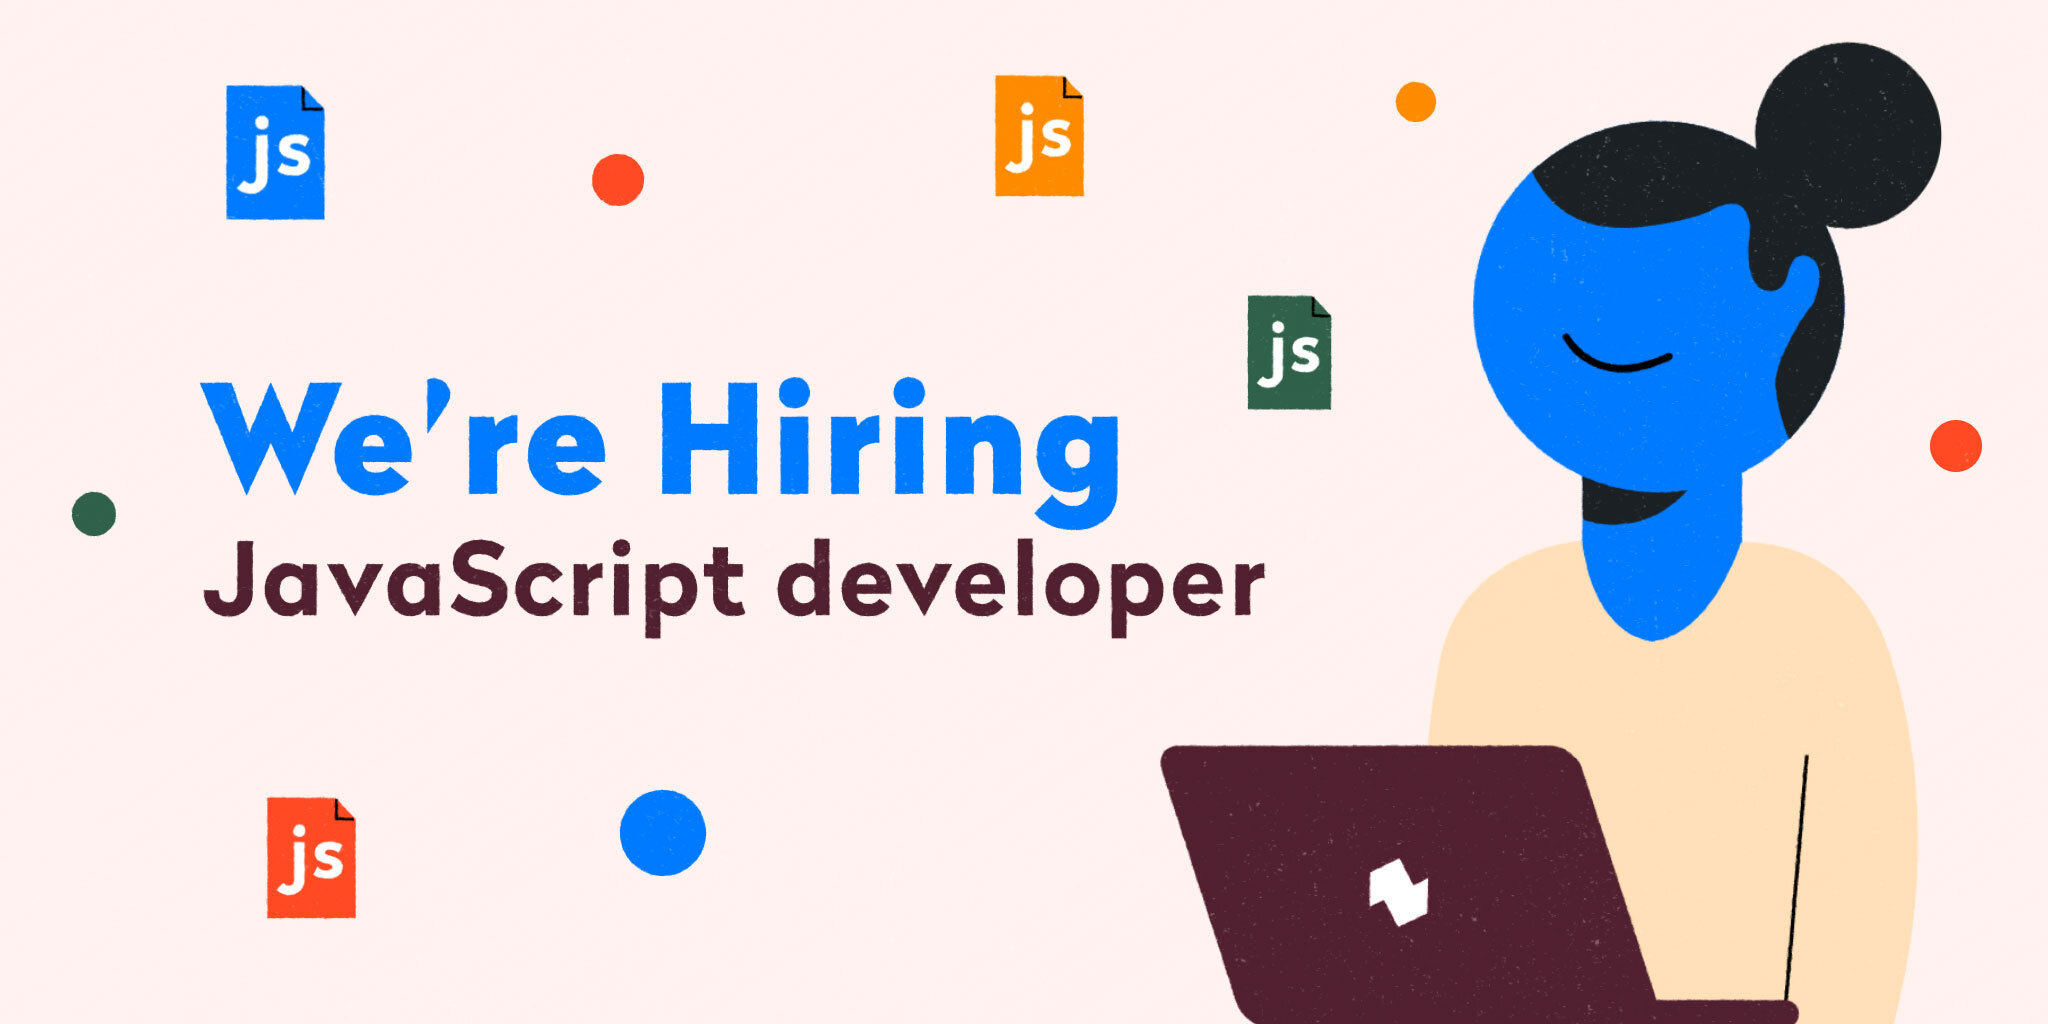 We're looking for a JavaScript developer - Nozbe's hiring